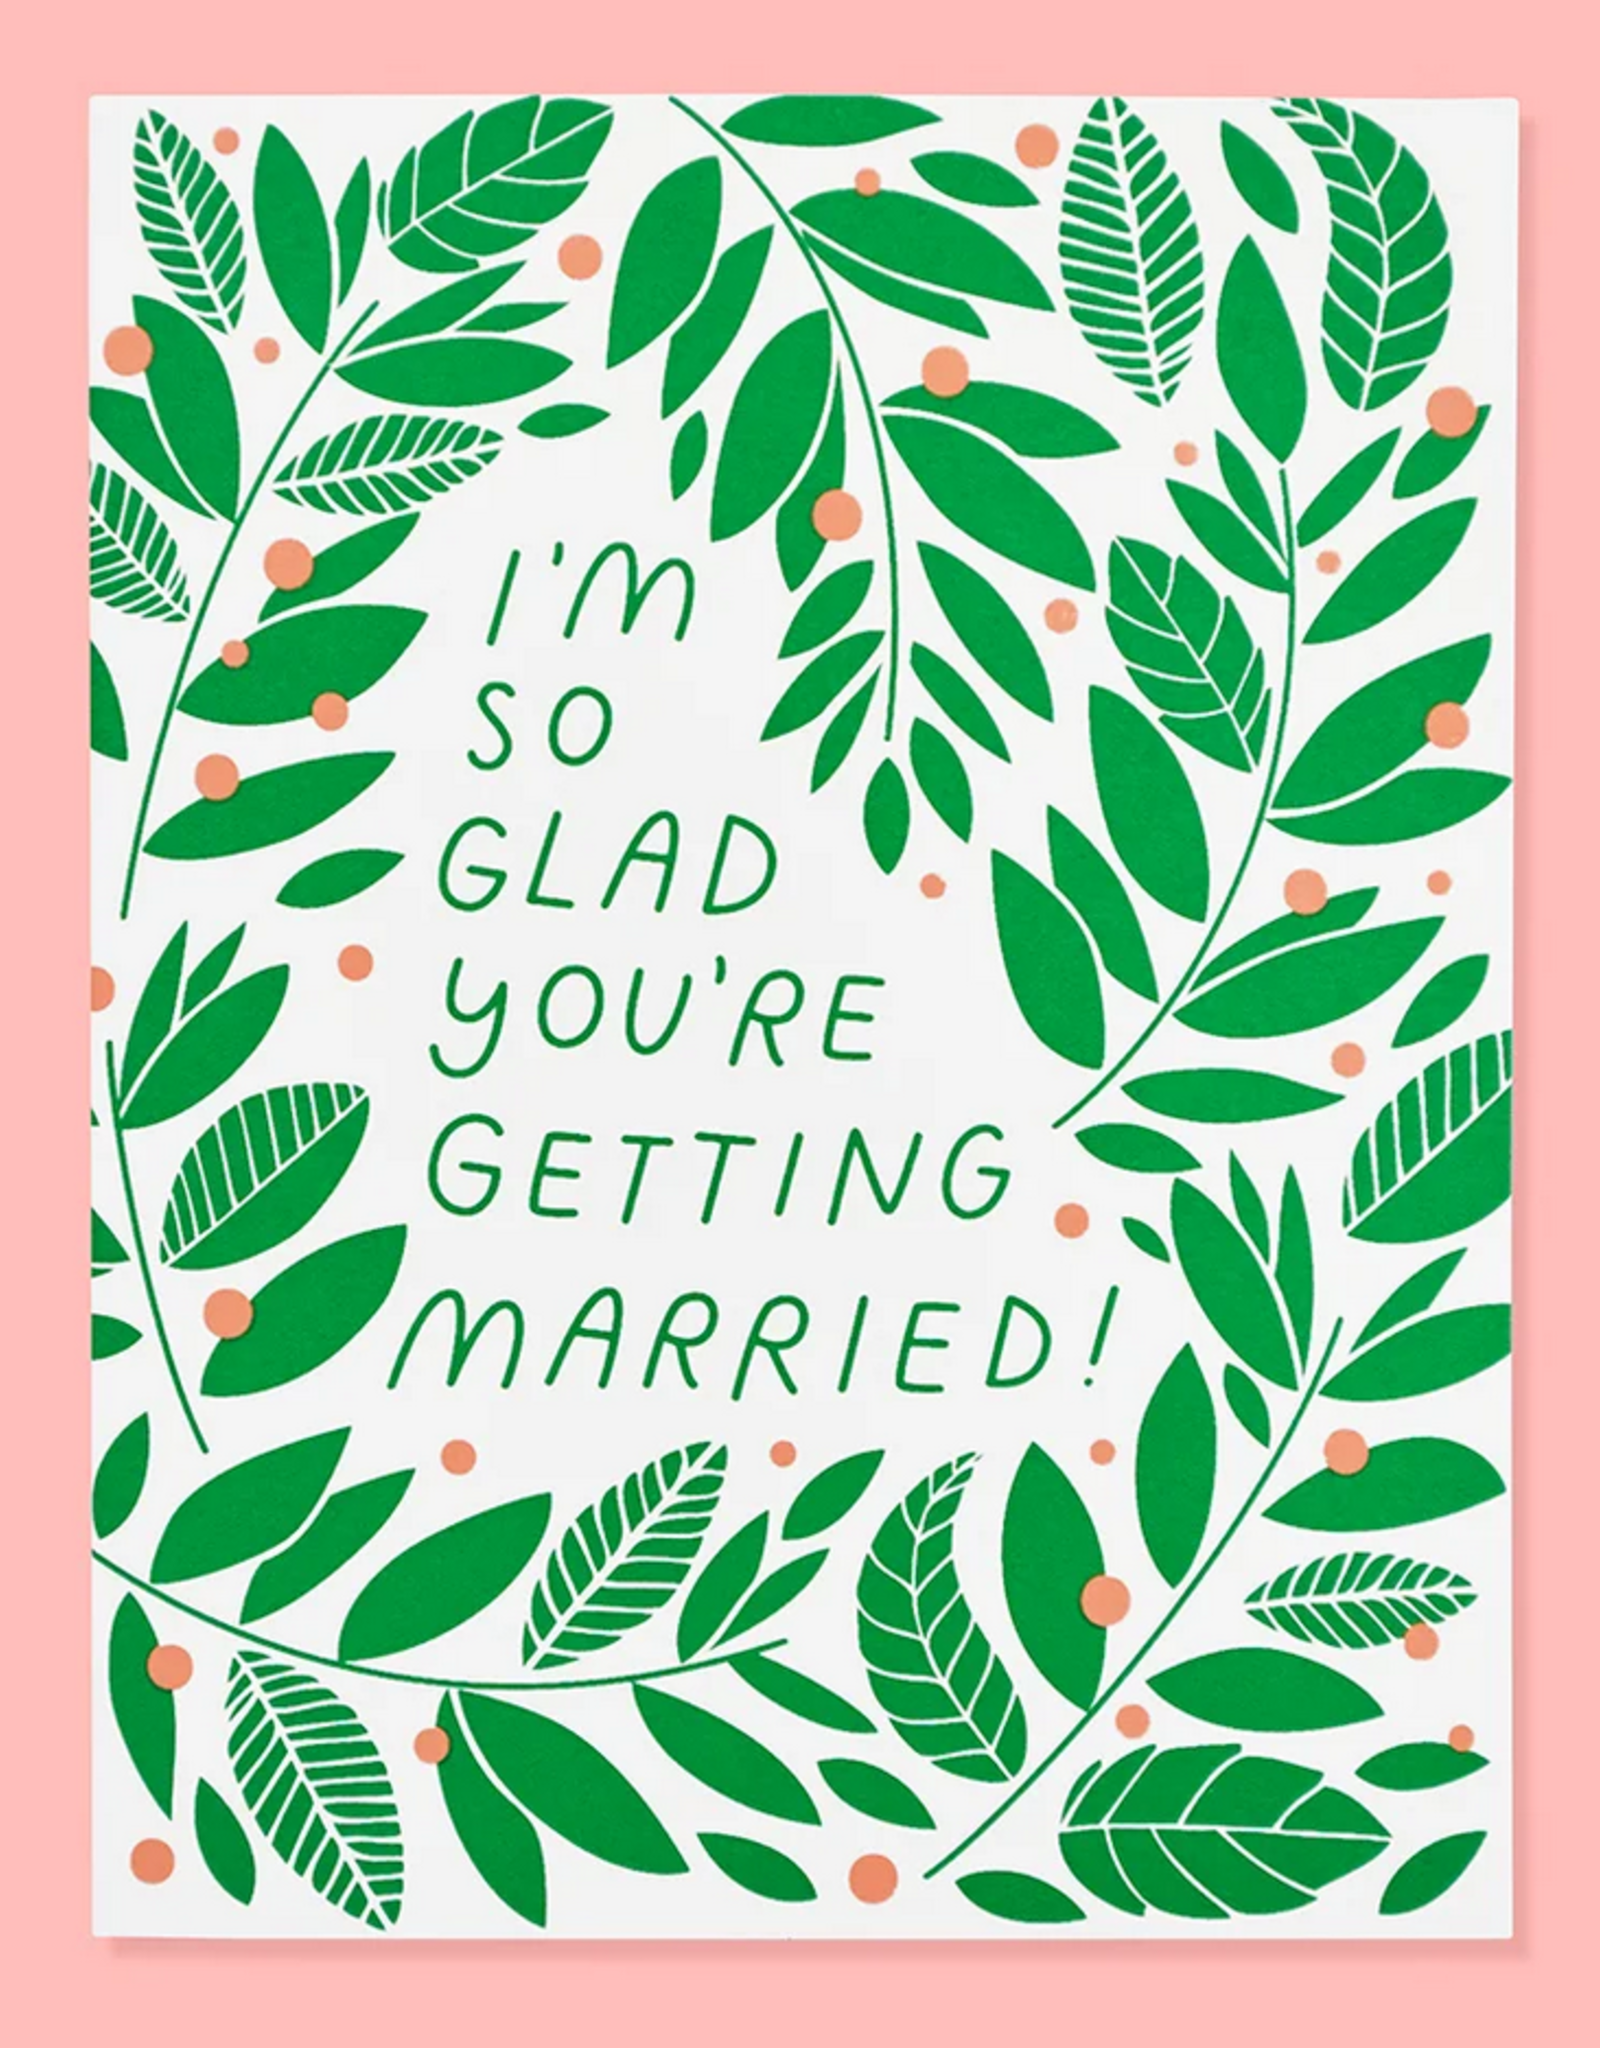 I'm So Glad You're Getting Married Vines Greeting Card